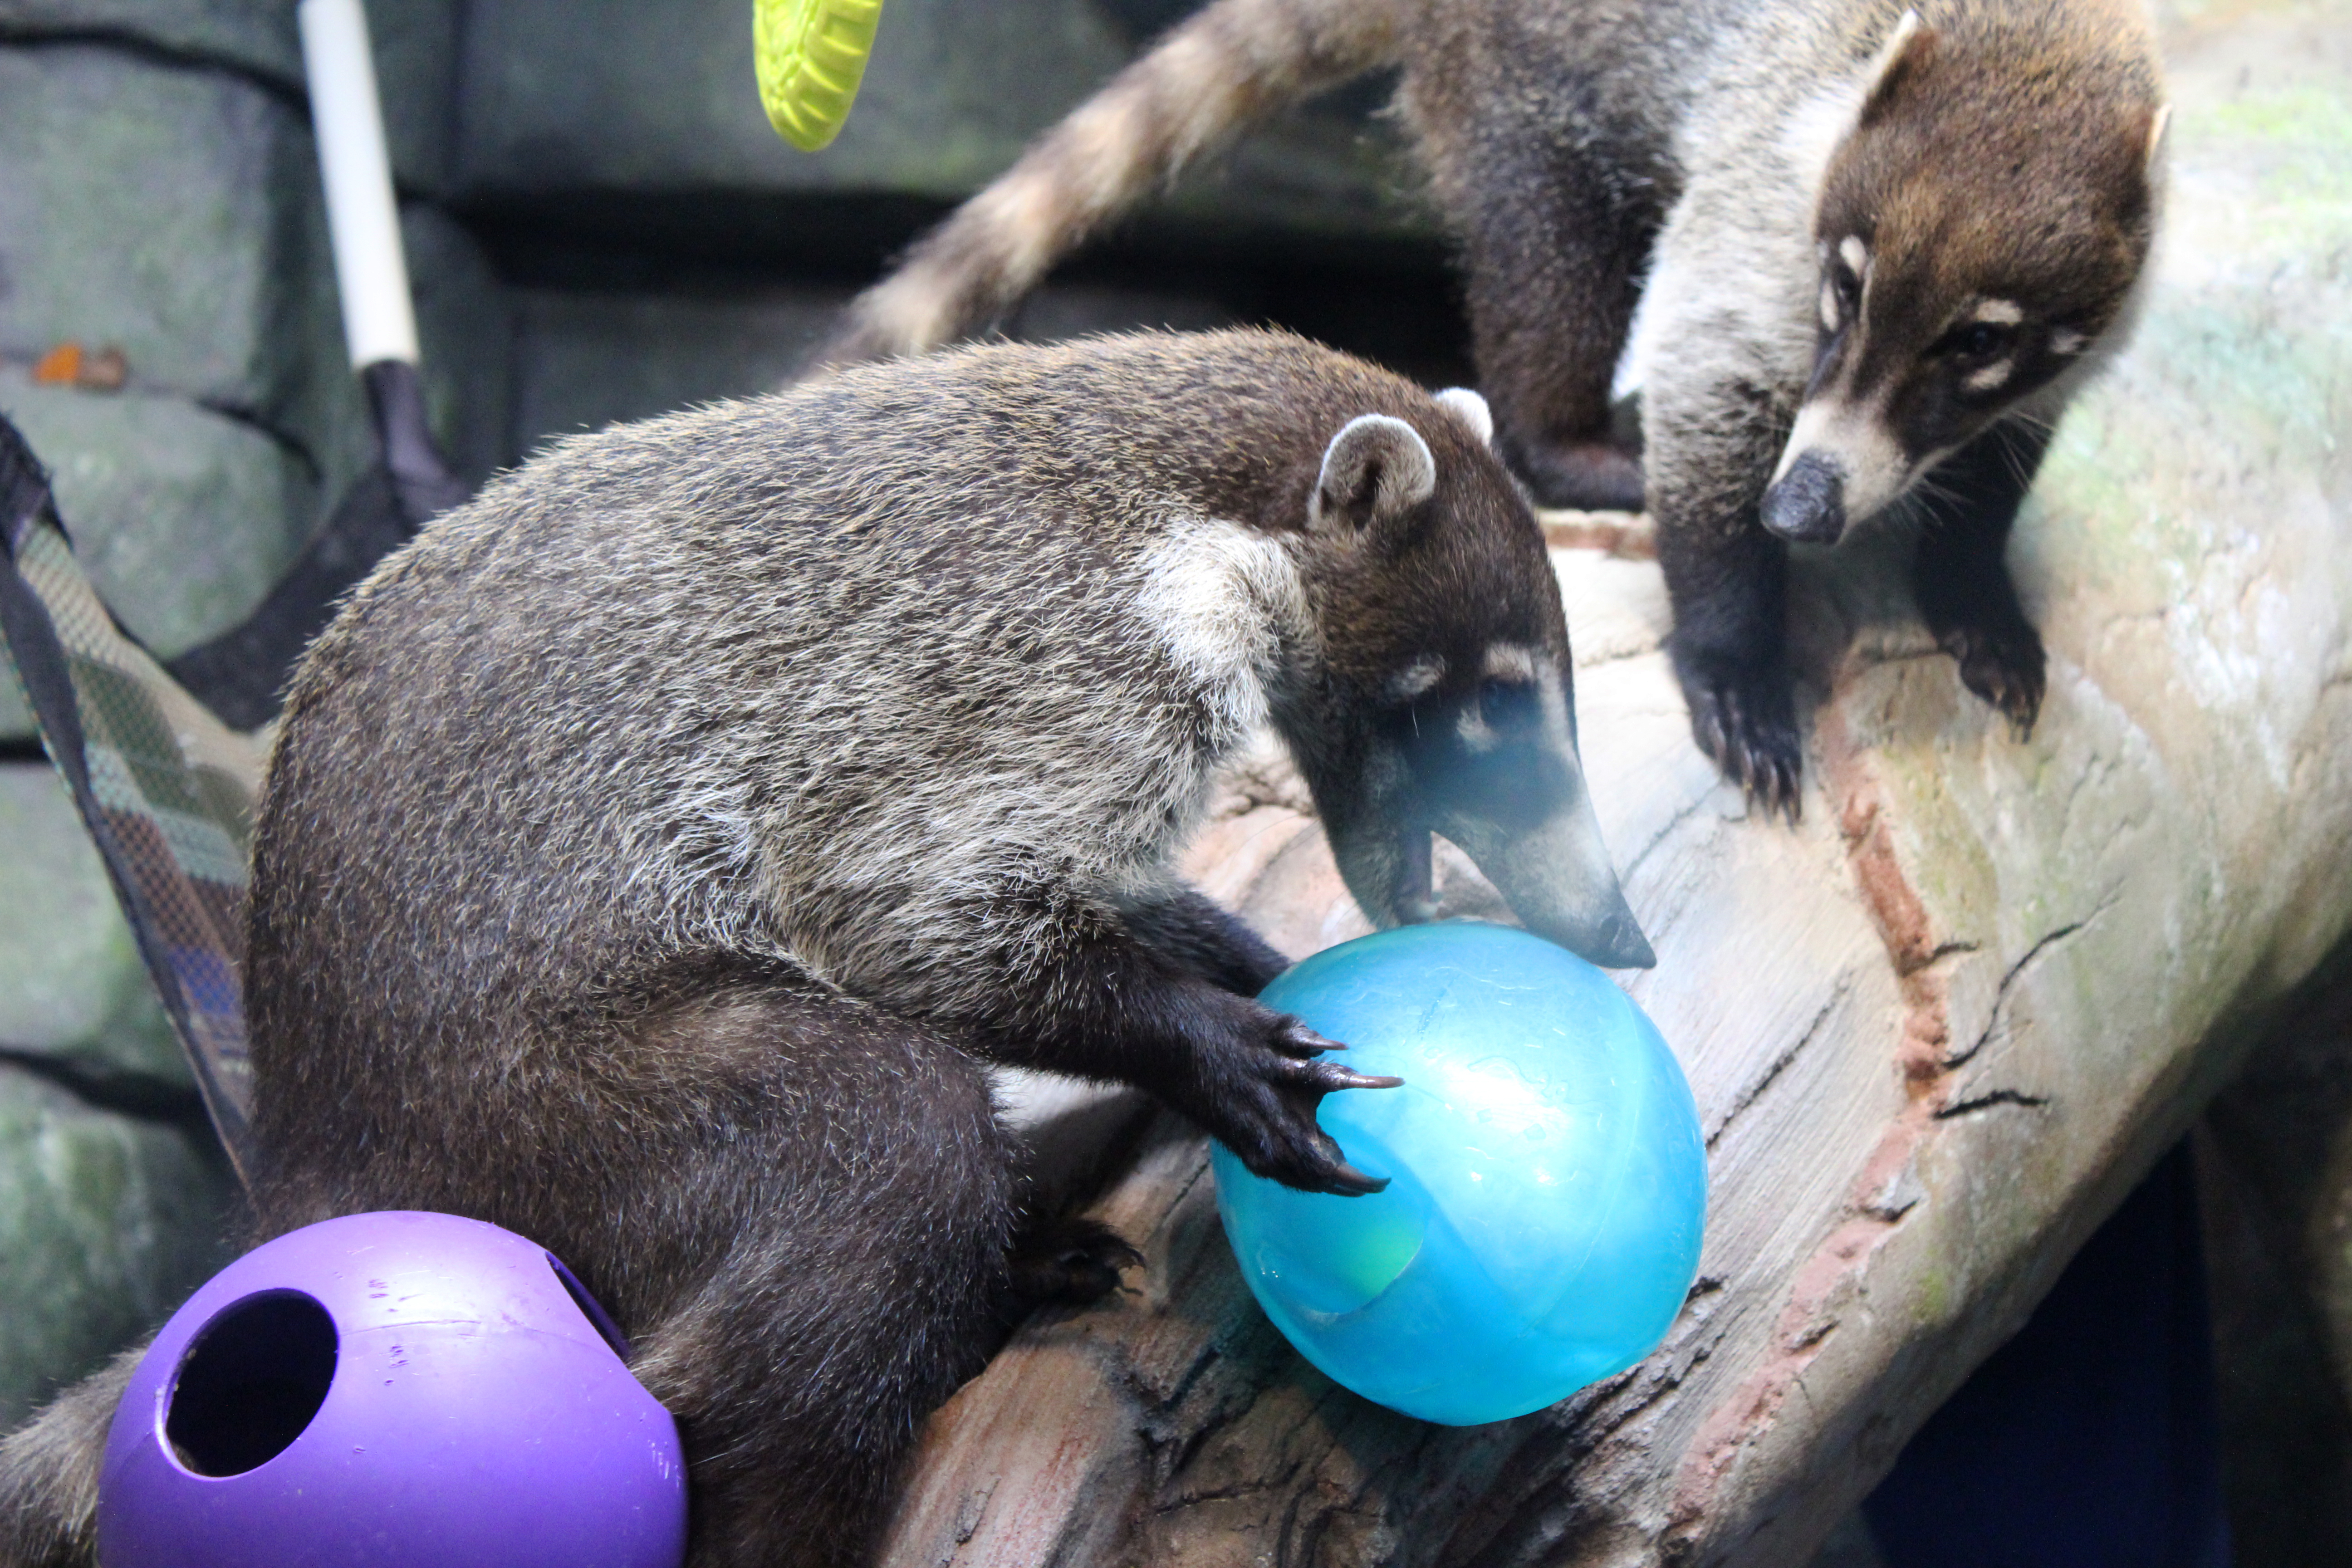 Coati playing with a Ball